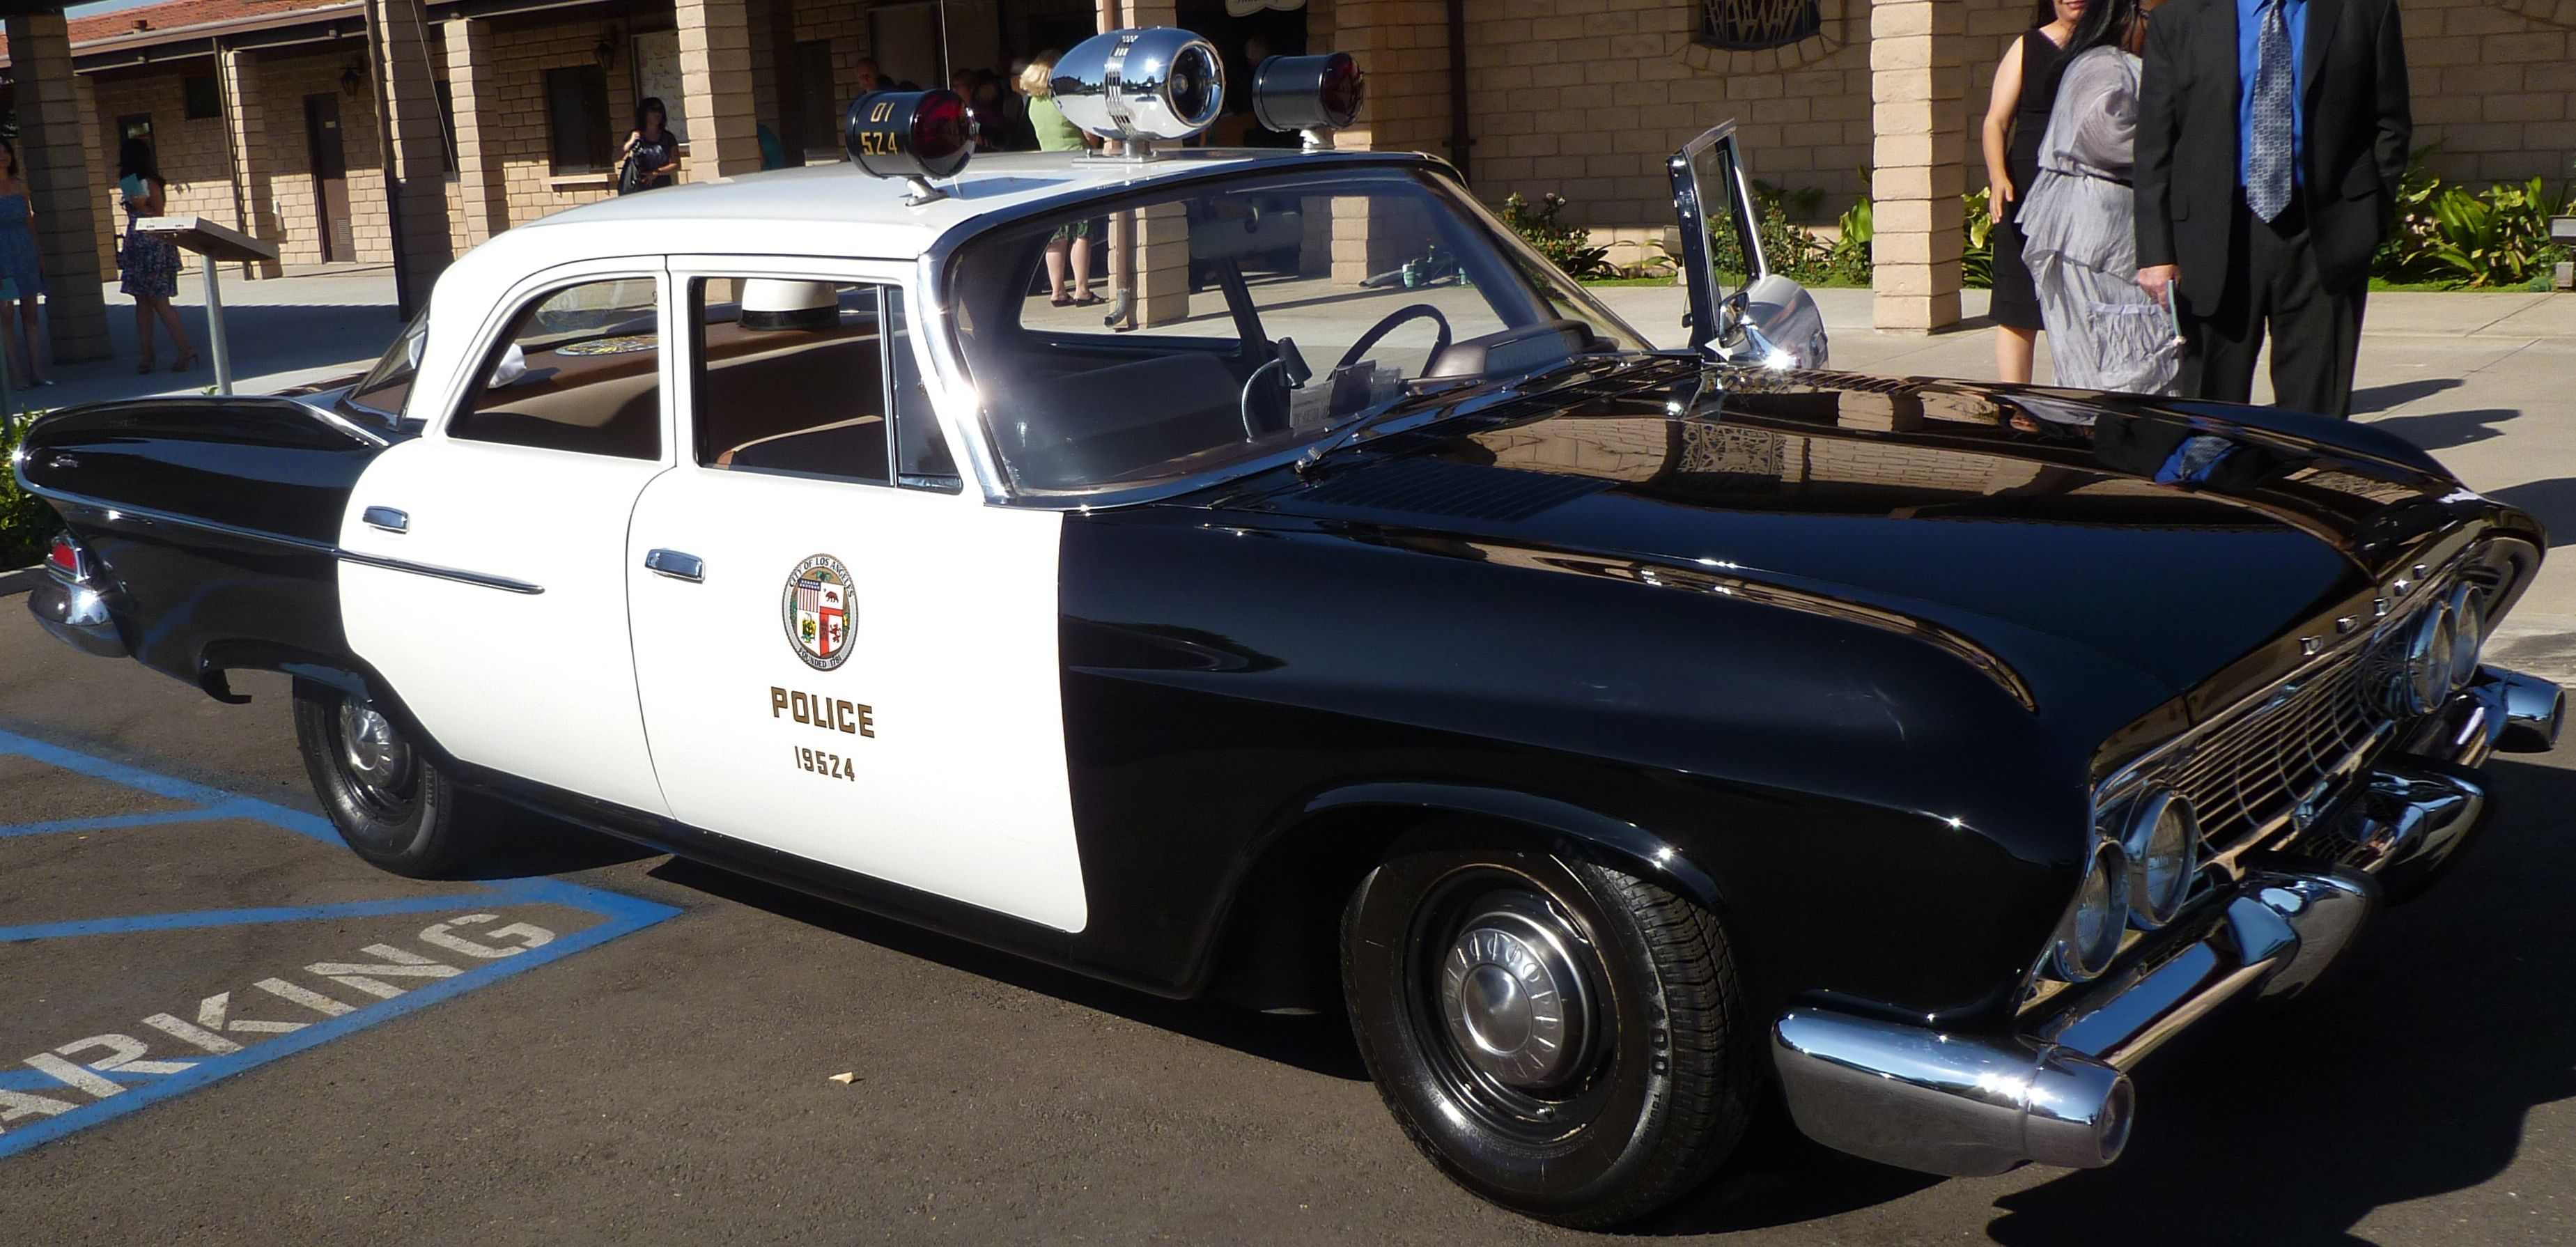 1950 S Lapd Black And White Police Car Police Cars Old Police Cars Ford Police